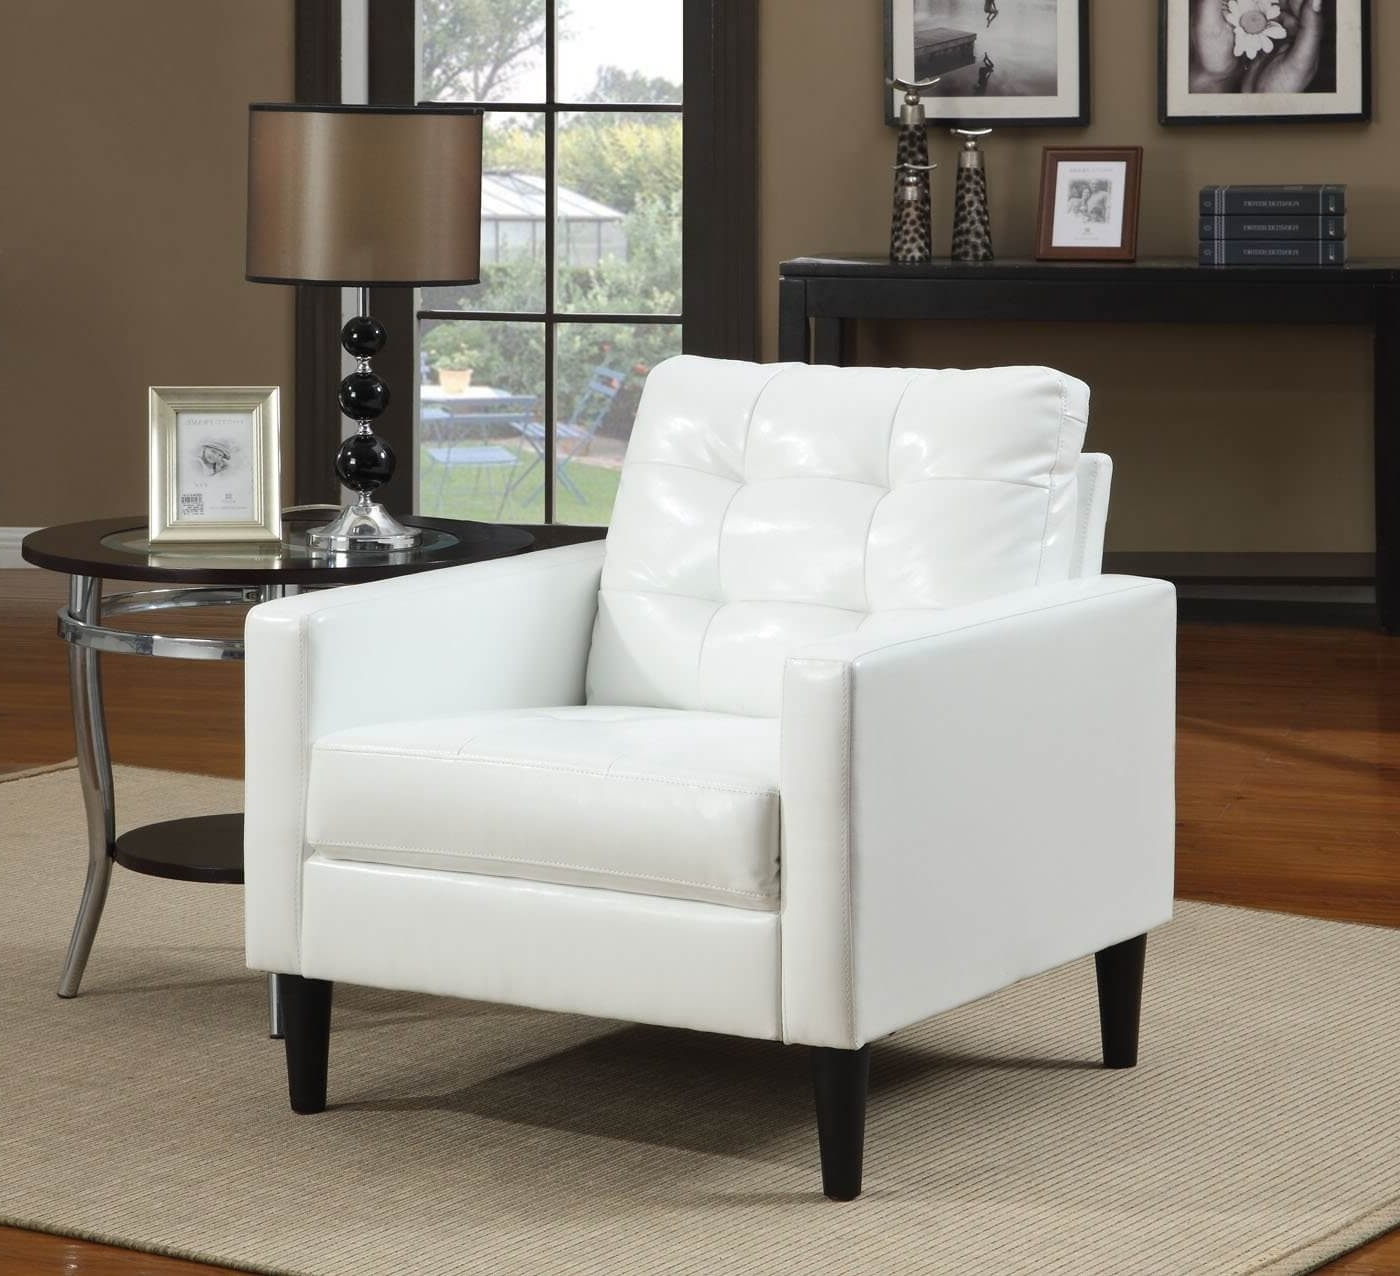 Well Known Accent Sofa Chairs Pertaining To 37 White Modern Accent Chairs For The Living Room (View 14 of 15)